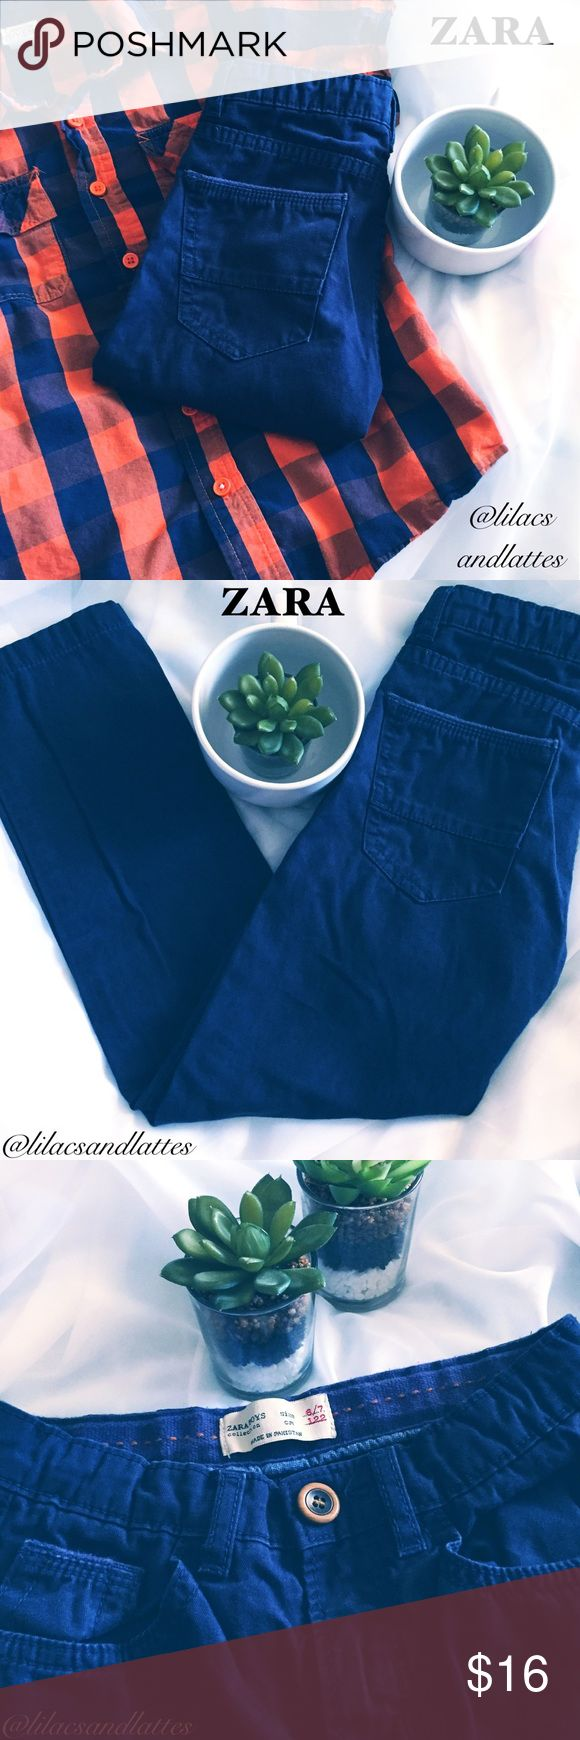 "{Zara} Boys Navy Pants Boys Navy Pants from Zara Boys Collection in EUC, No Flaws!! Excellent Quality!! Size 6/7 with adjustable waistband • 20"" inseam, 8"" rise • Only Reasonable Offers Accepted, please refer to chart in listing photos. No trades. 🛍Bundles of 3 or more listings receive 10% discount!!🛍Thank you👖 Zara Bottoms Casual"